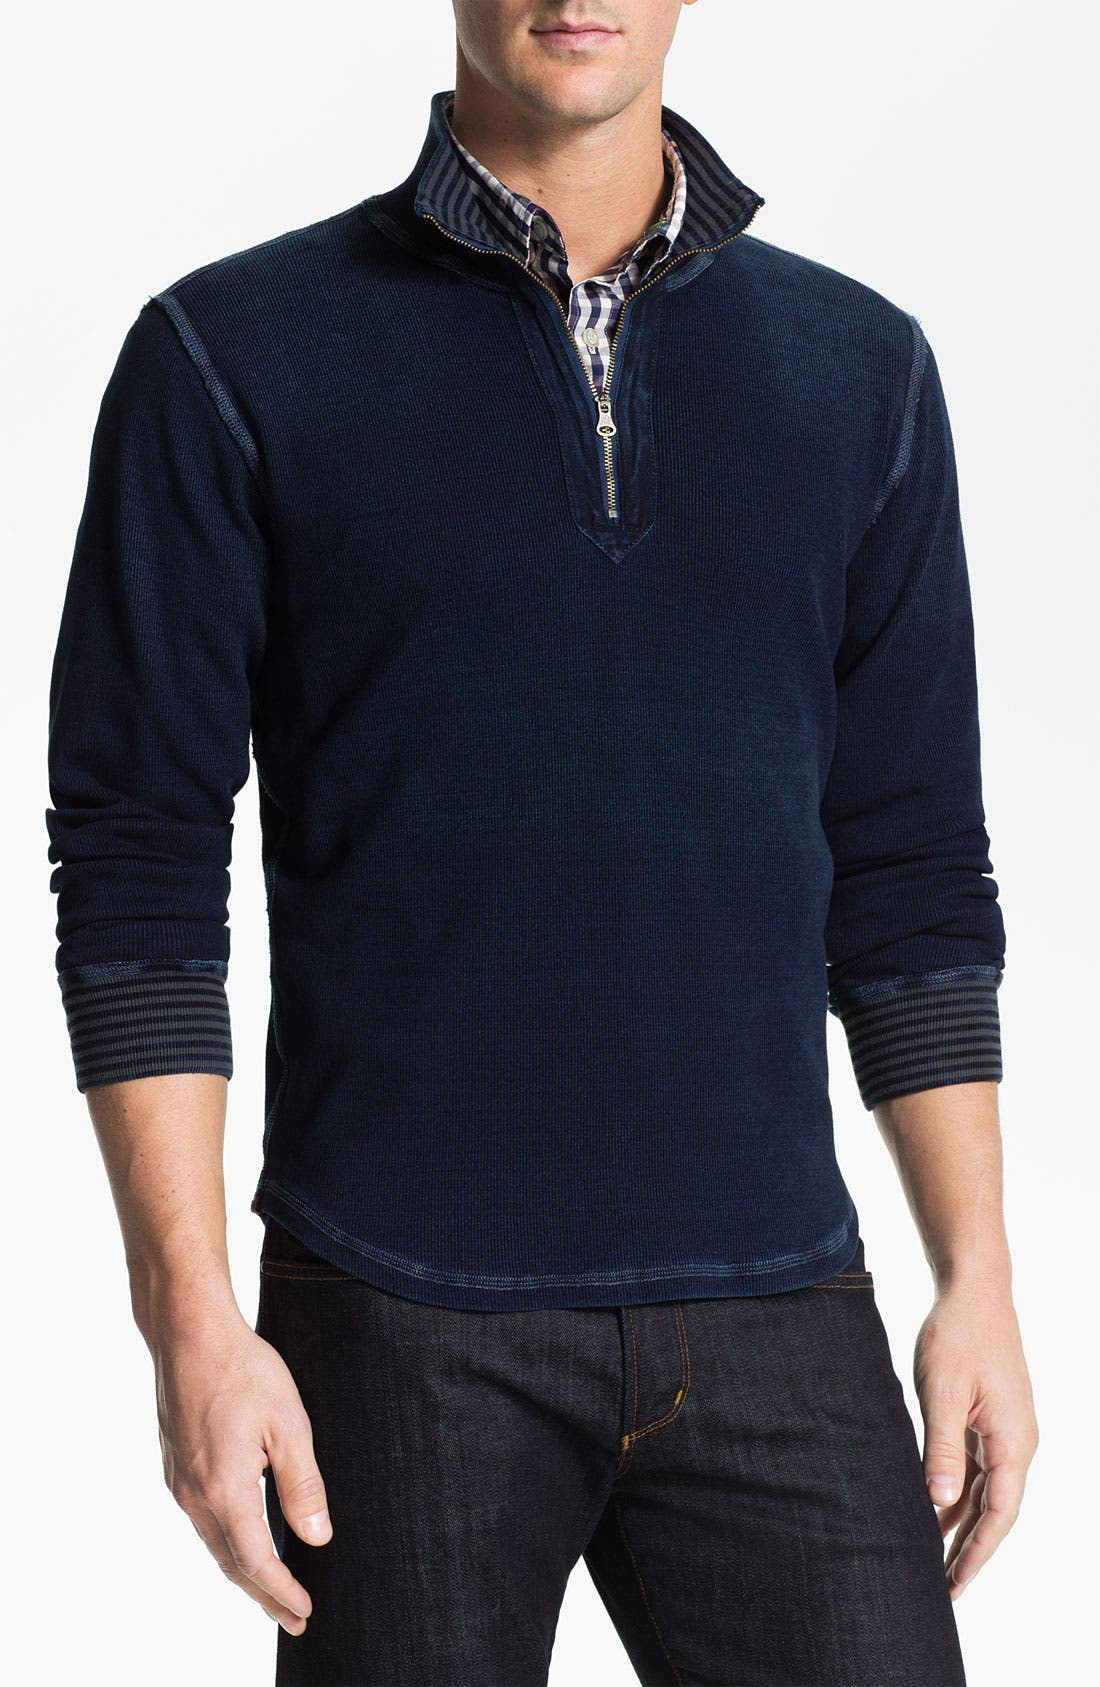 Alternate Image 1 Selected - Robert Graham 'Gable' Mock Neck Pullover